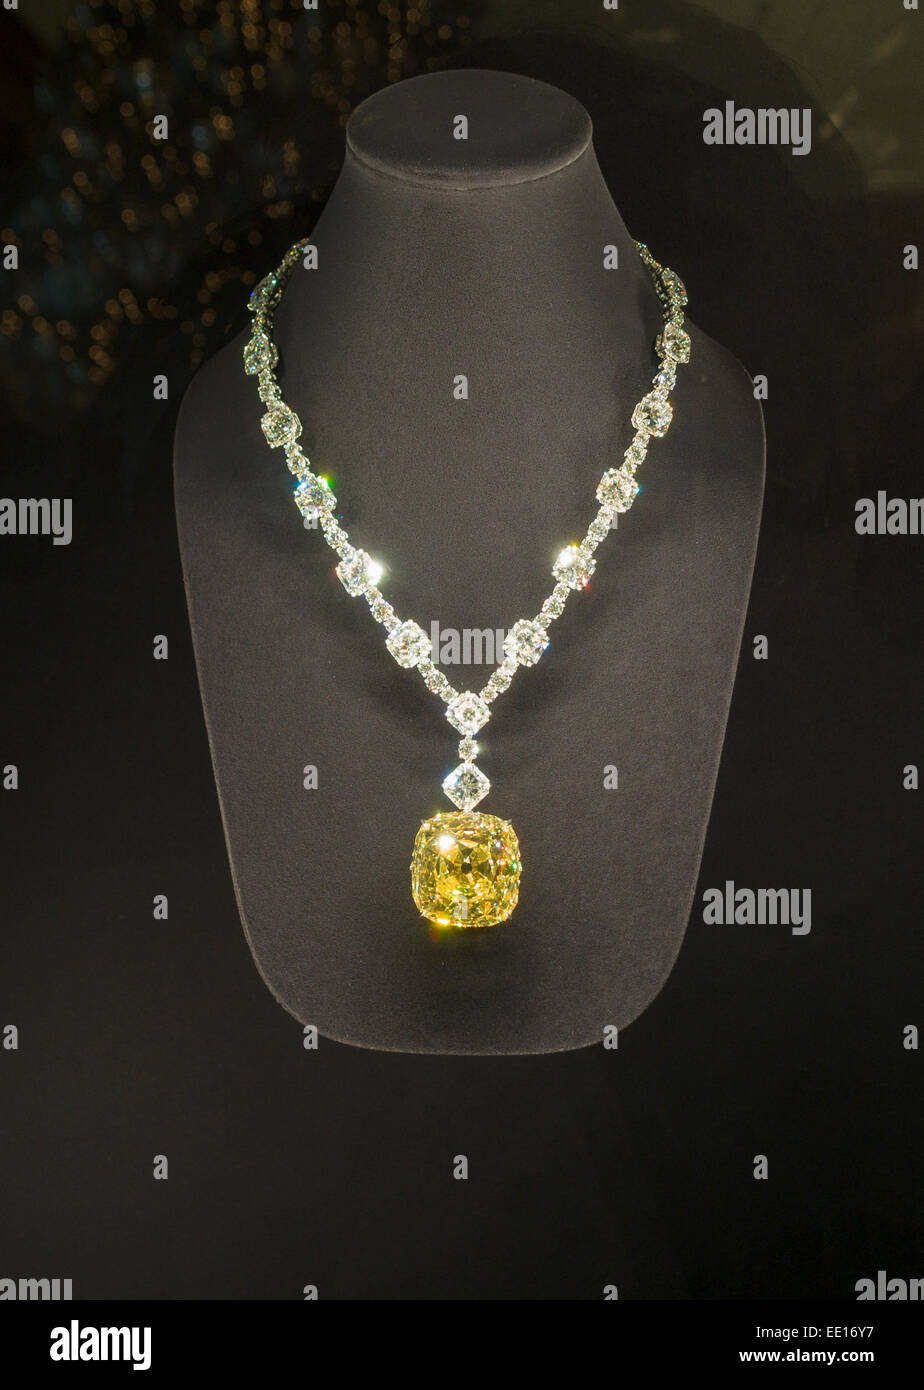 Tiffany yellow diamond mounted in a necklace of white diamonds tiffany yellow diamond mounted in a necklace of white diamonds on display at the fifth avenue store tiffanys new york city mozeypictures Image collections